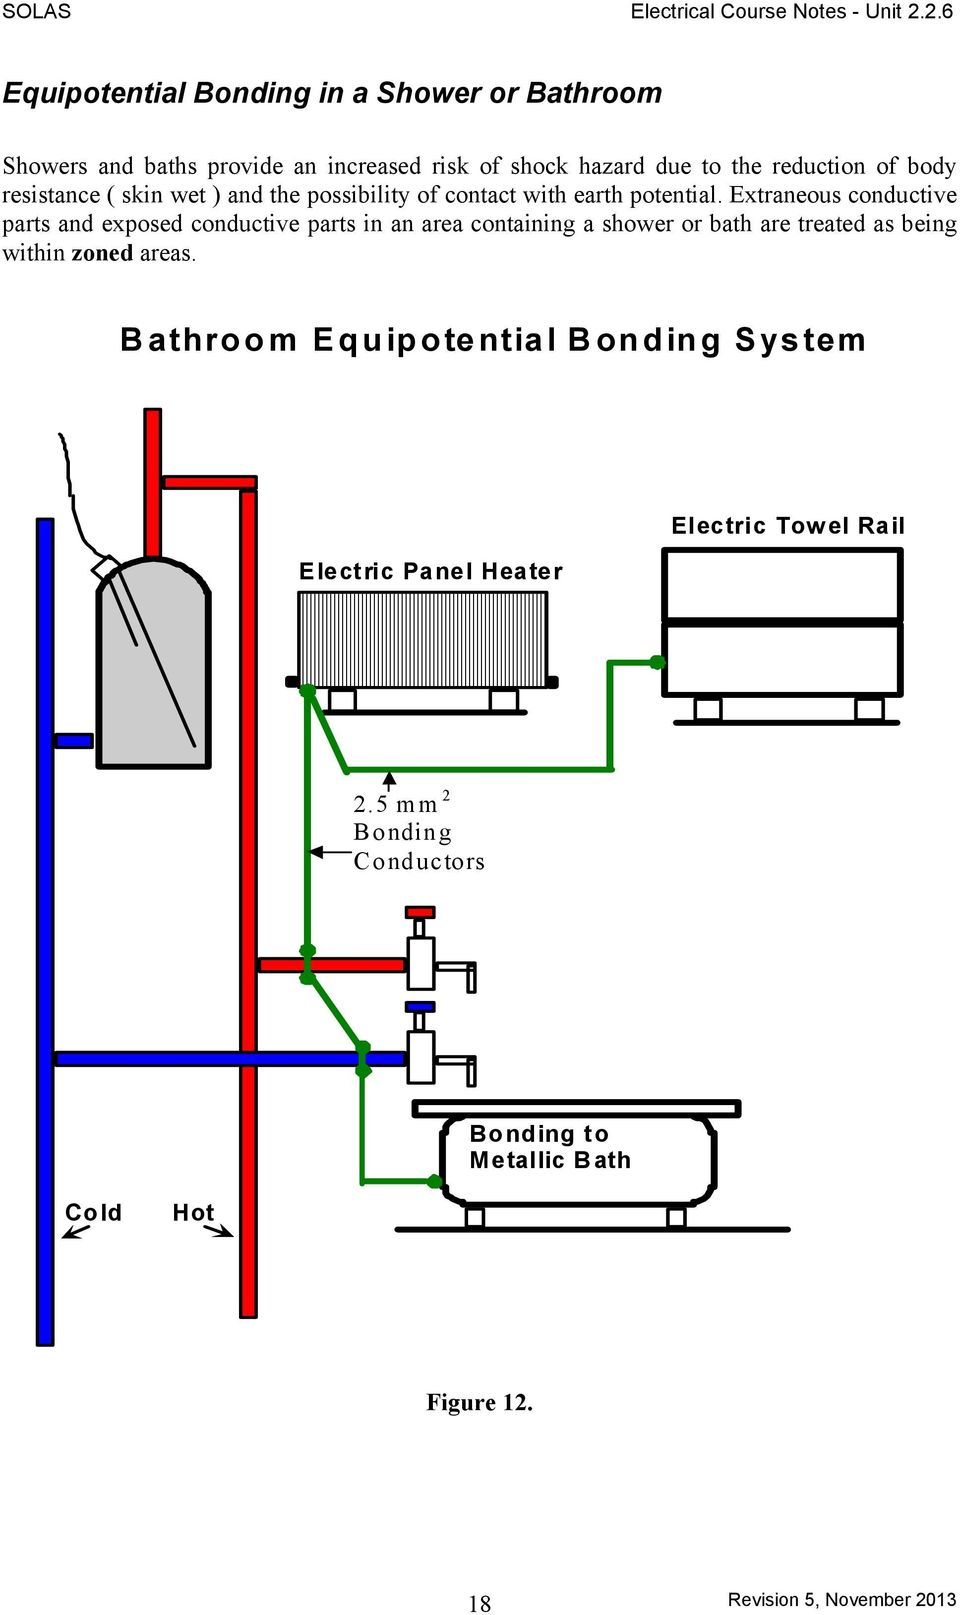 Extraneous conductive parts and exposed conductive parts in an area containing a shower or bath are treated as being within